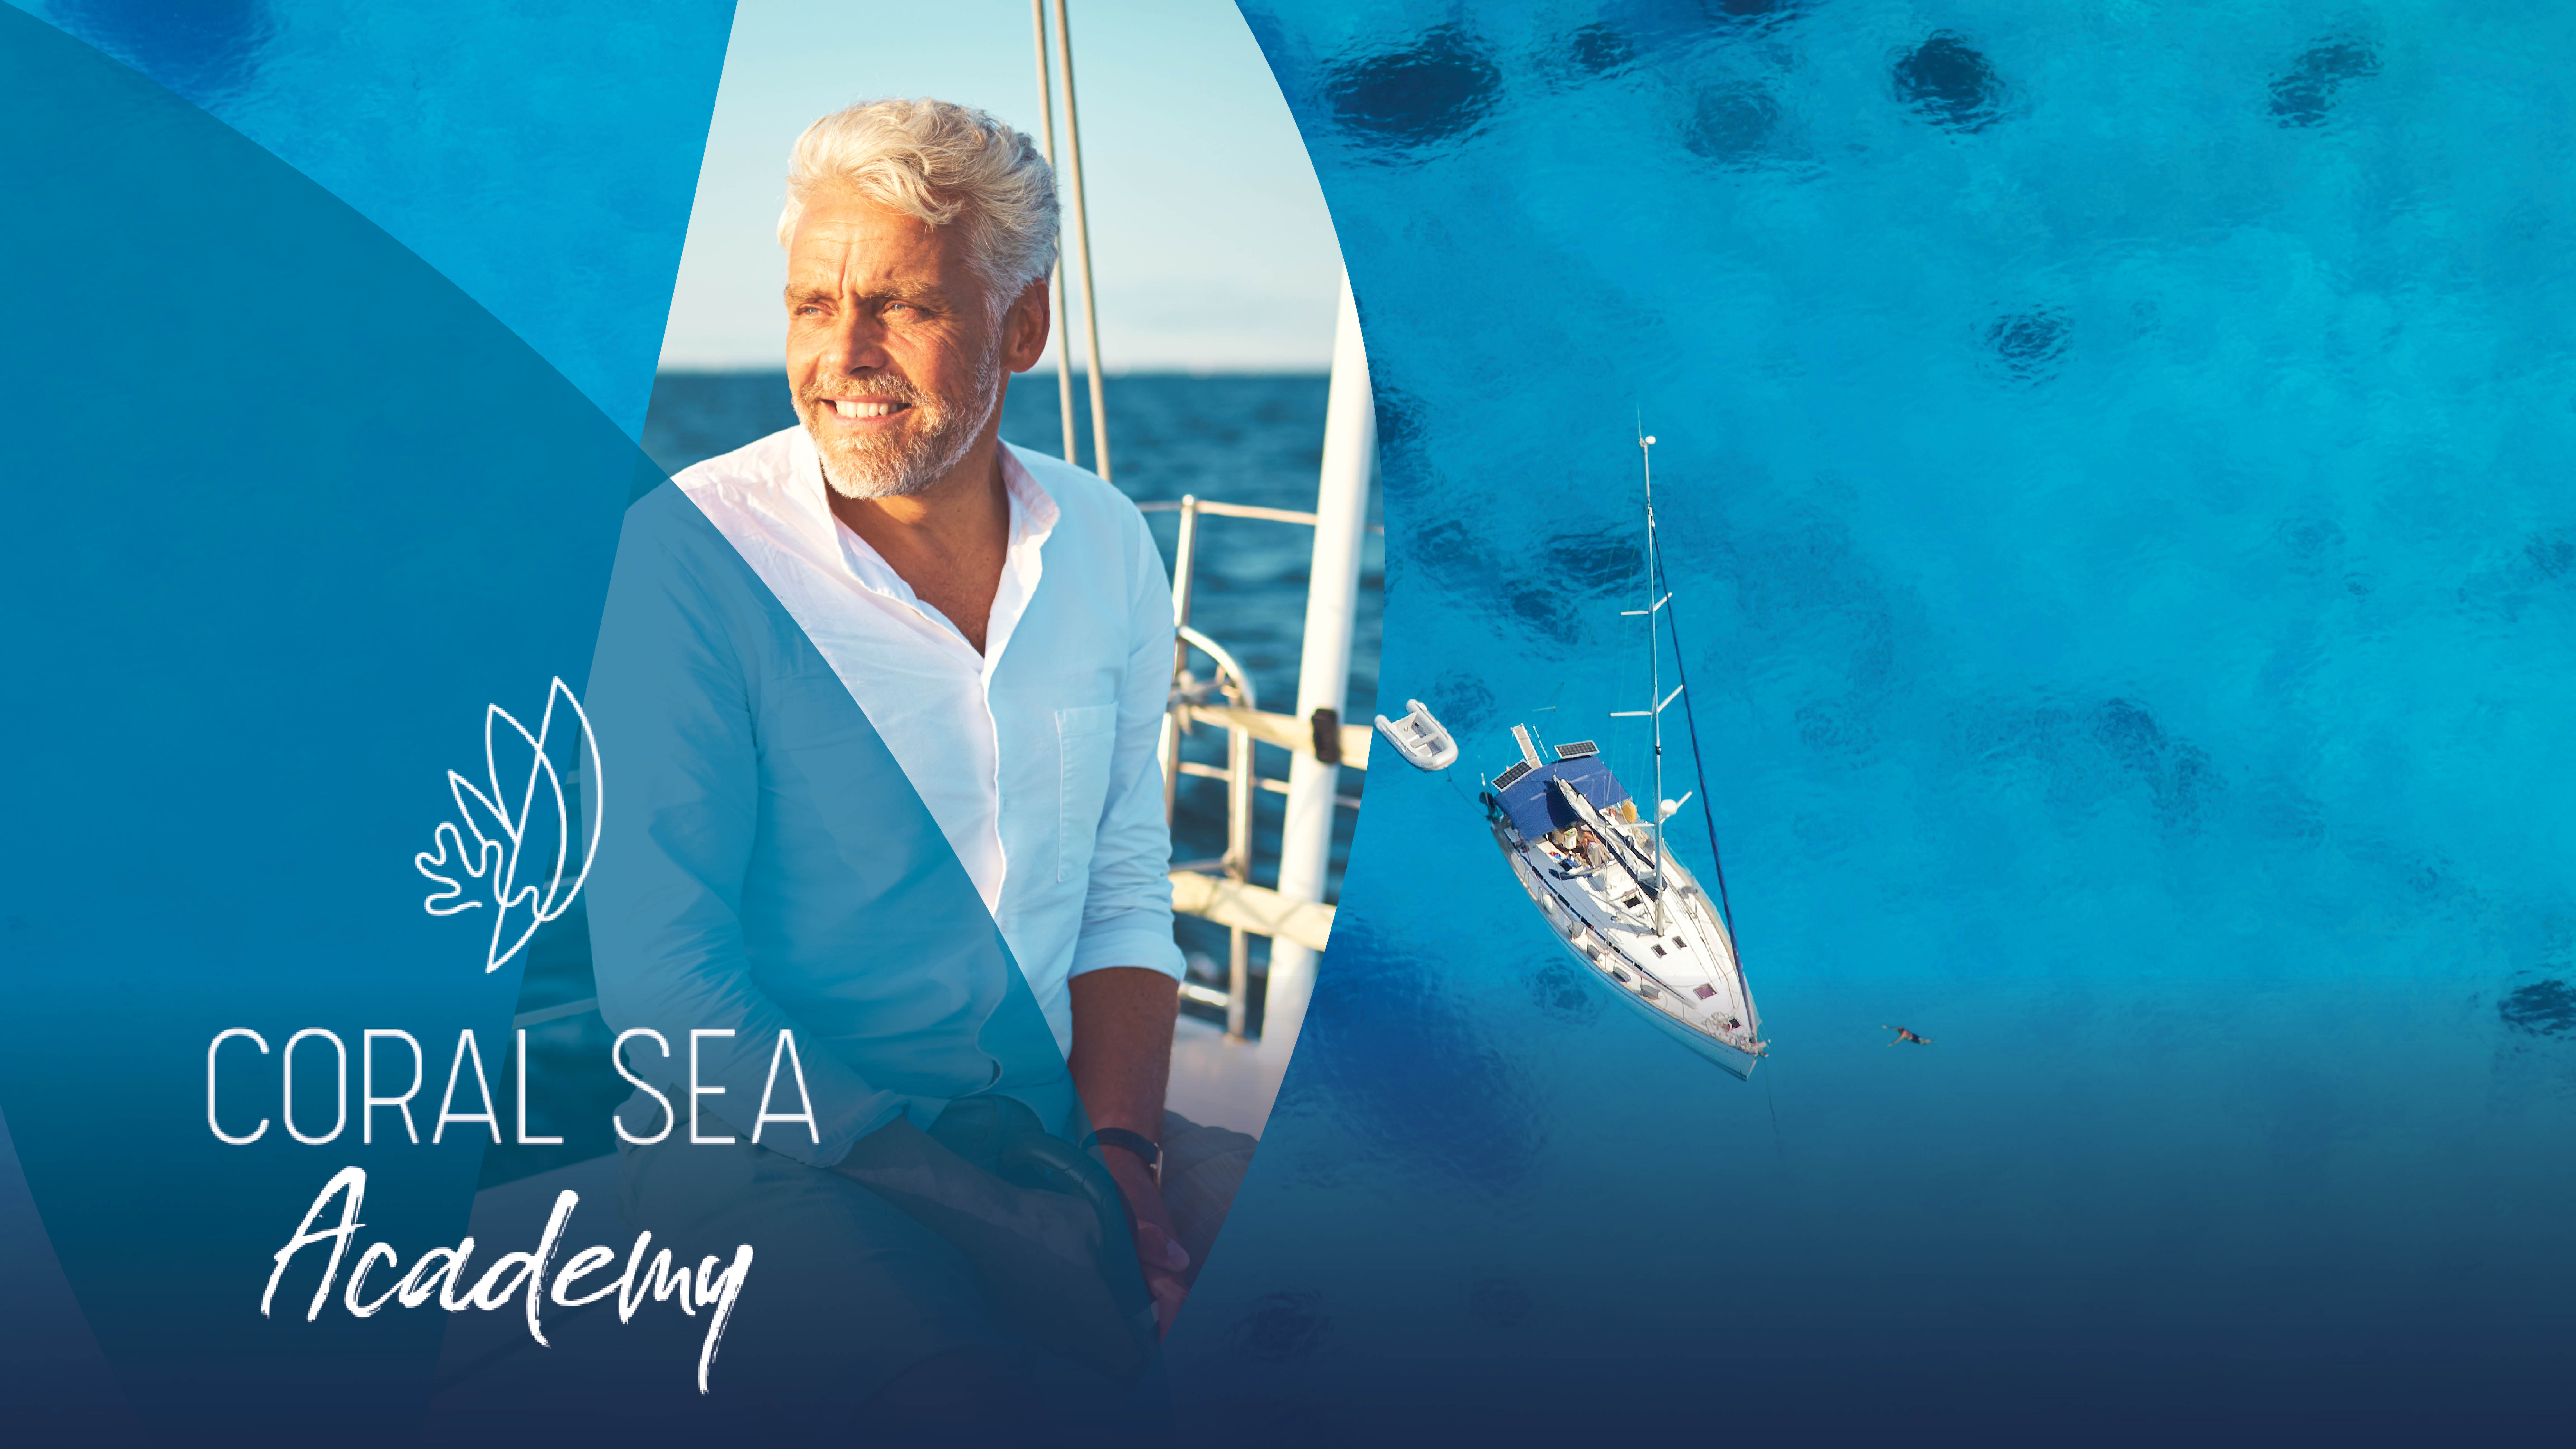 Coral Sea Academy Event promotion image Blue Mind and Boating